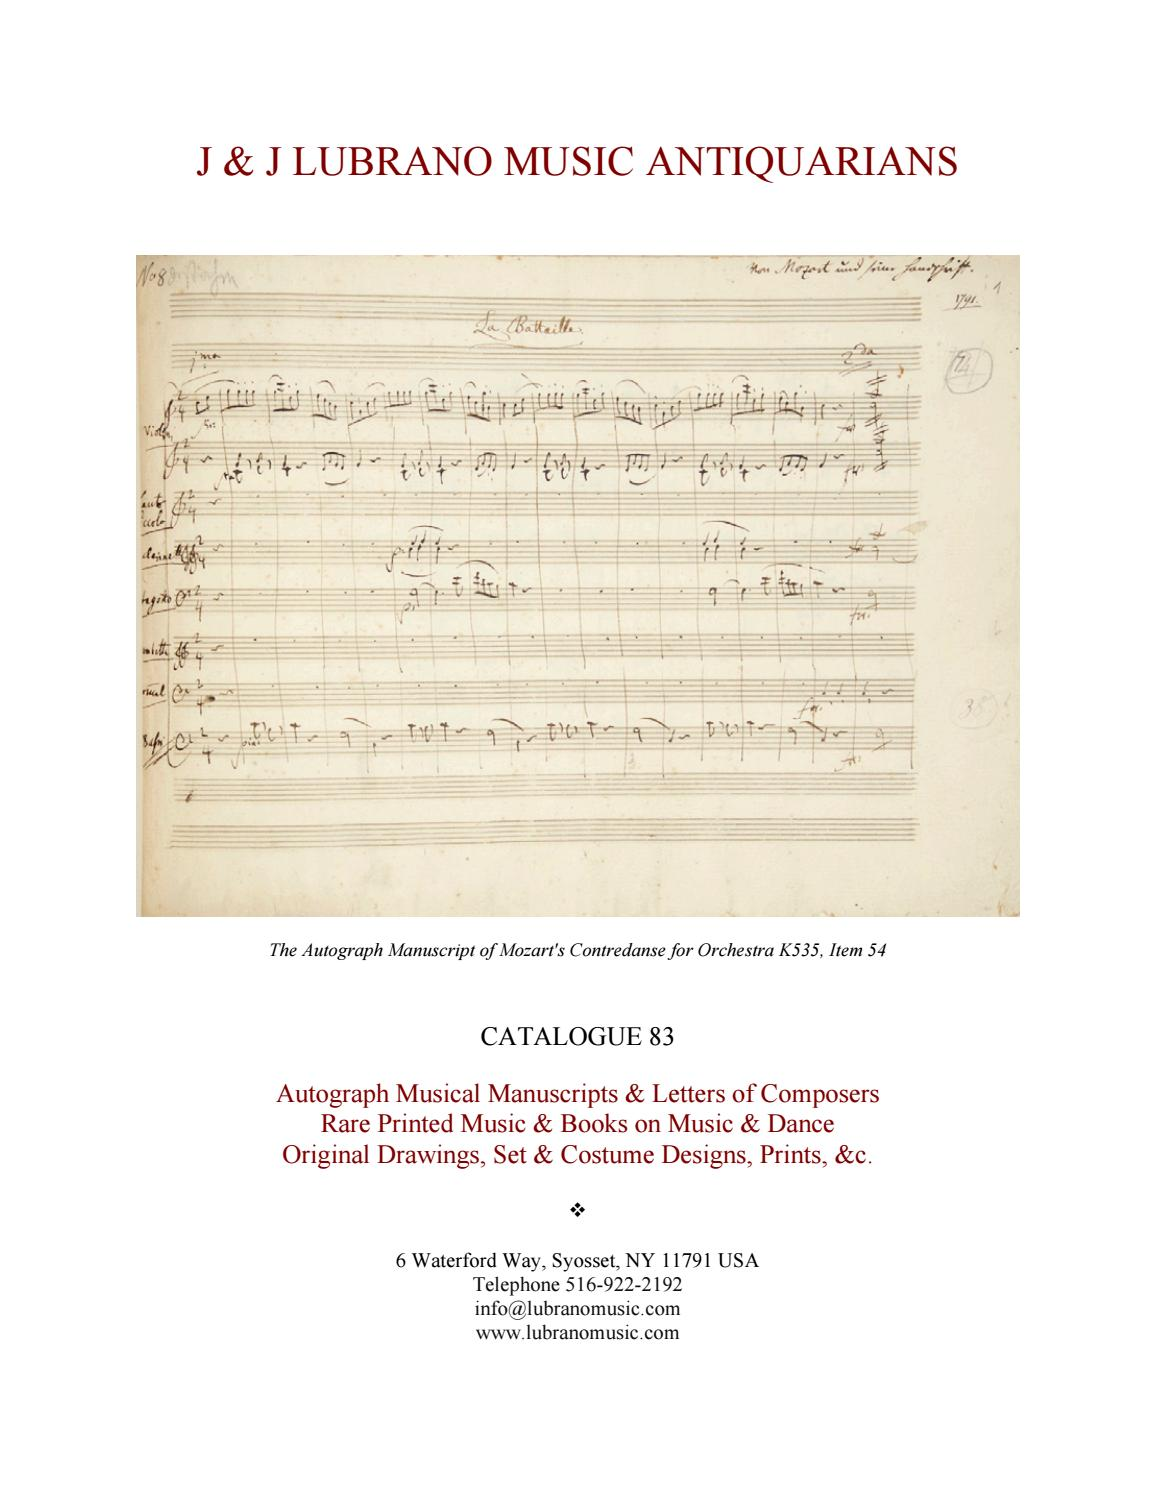 Catalogue 83 by J & J Lubrano Music Antiquarians - issuu